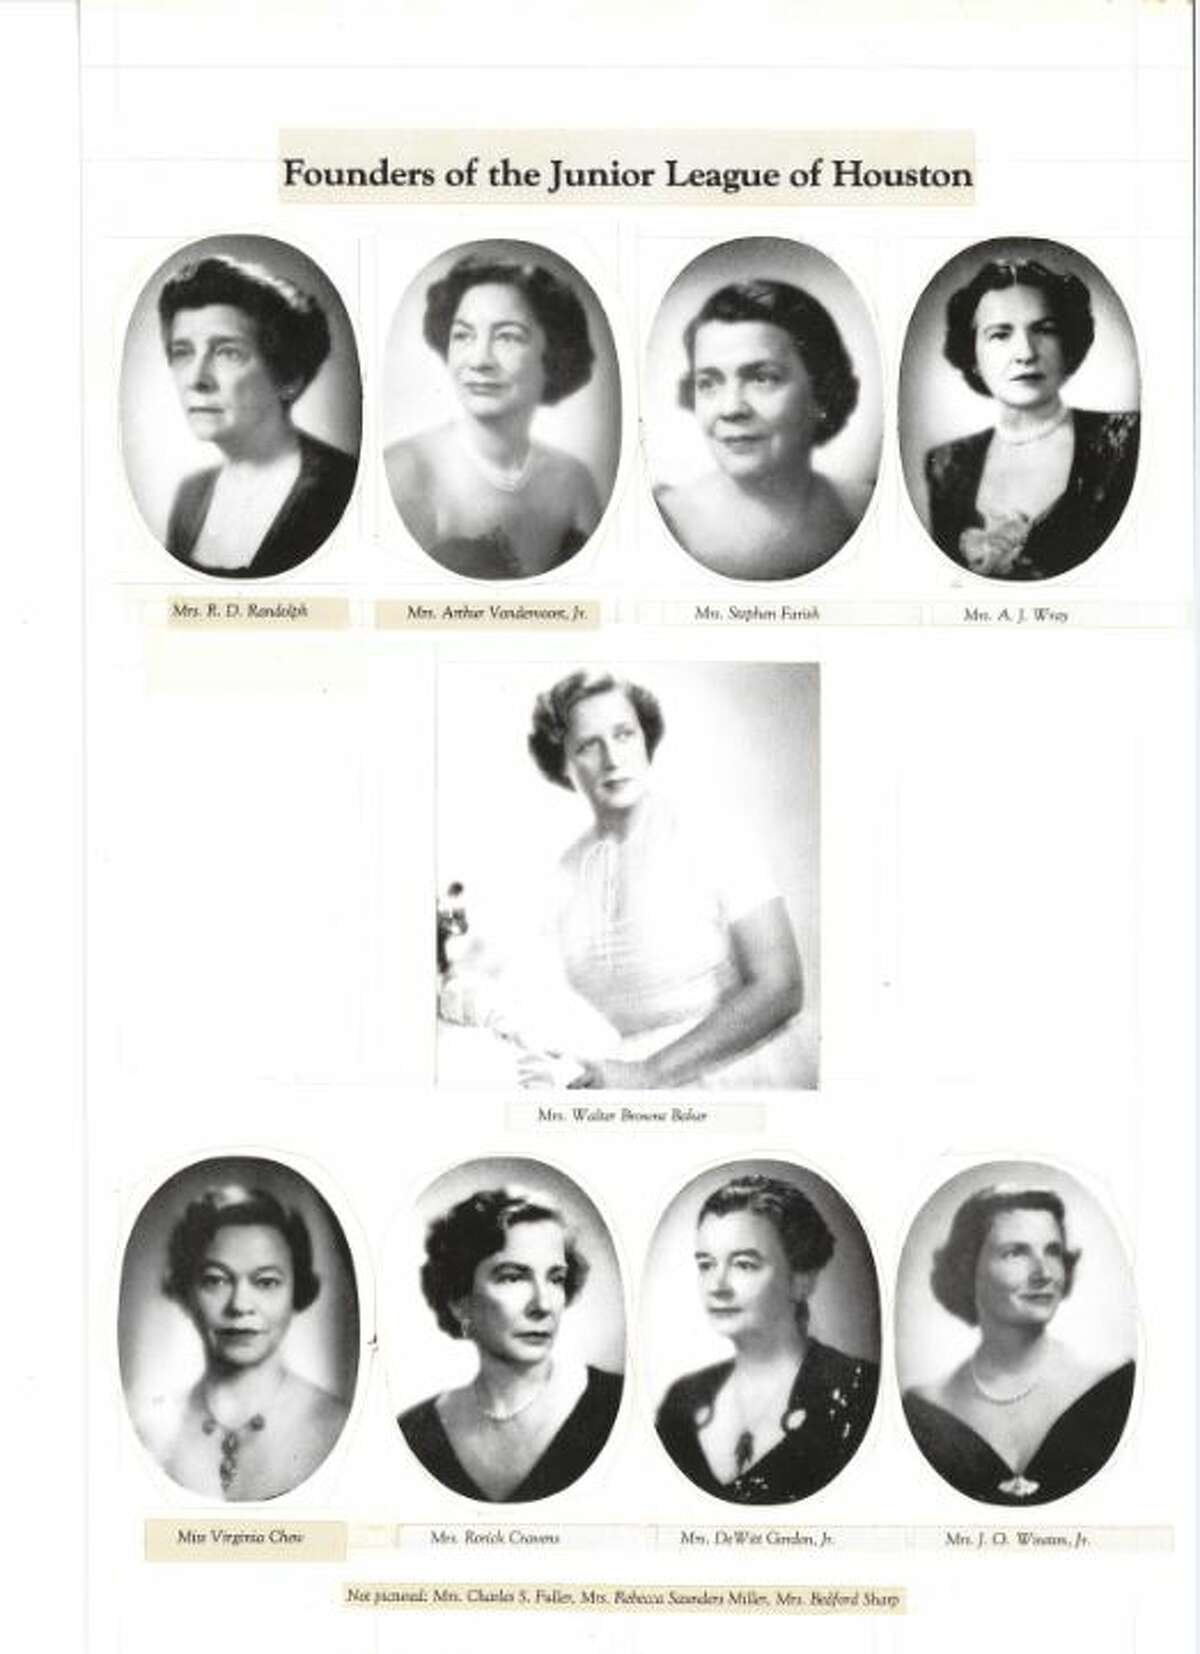 1925 Headshots, taken in 1925, of the founding members of the Junior League of Houston.